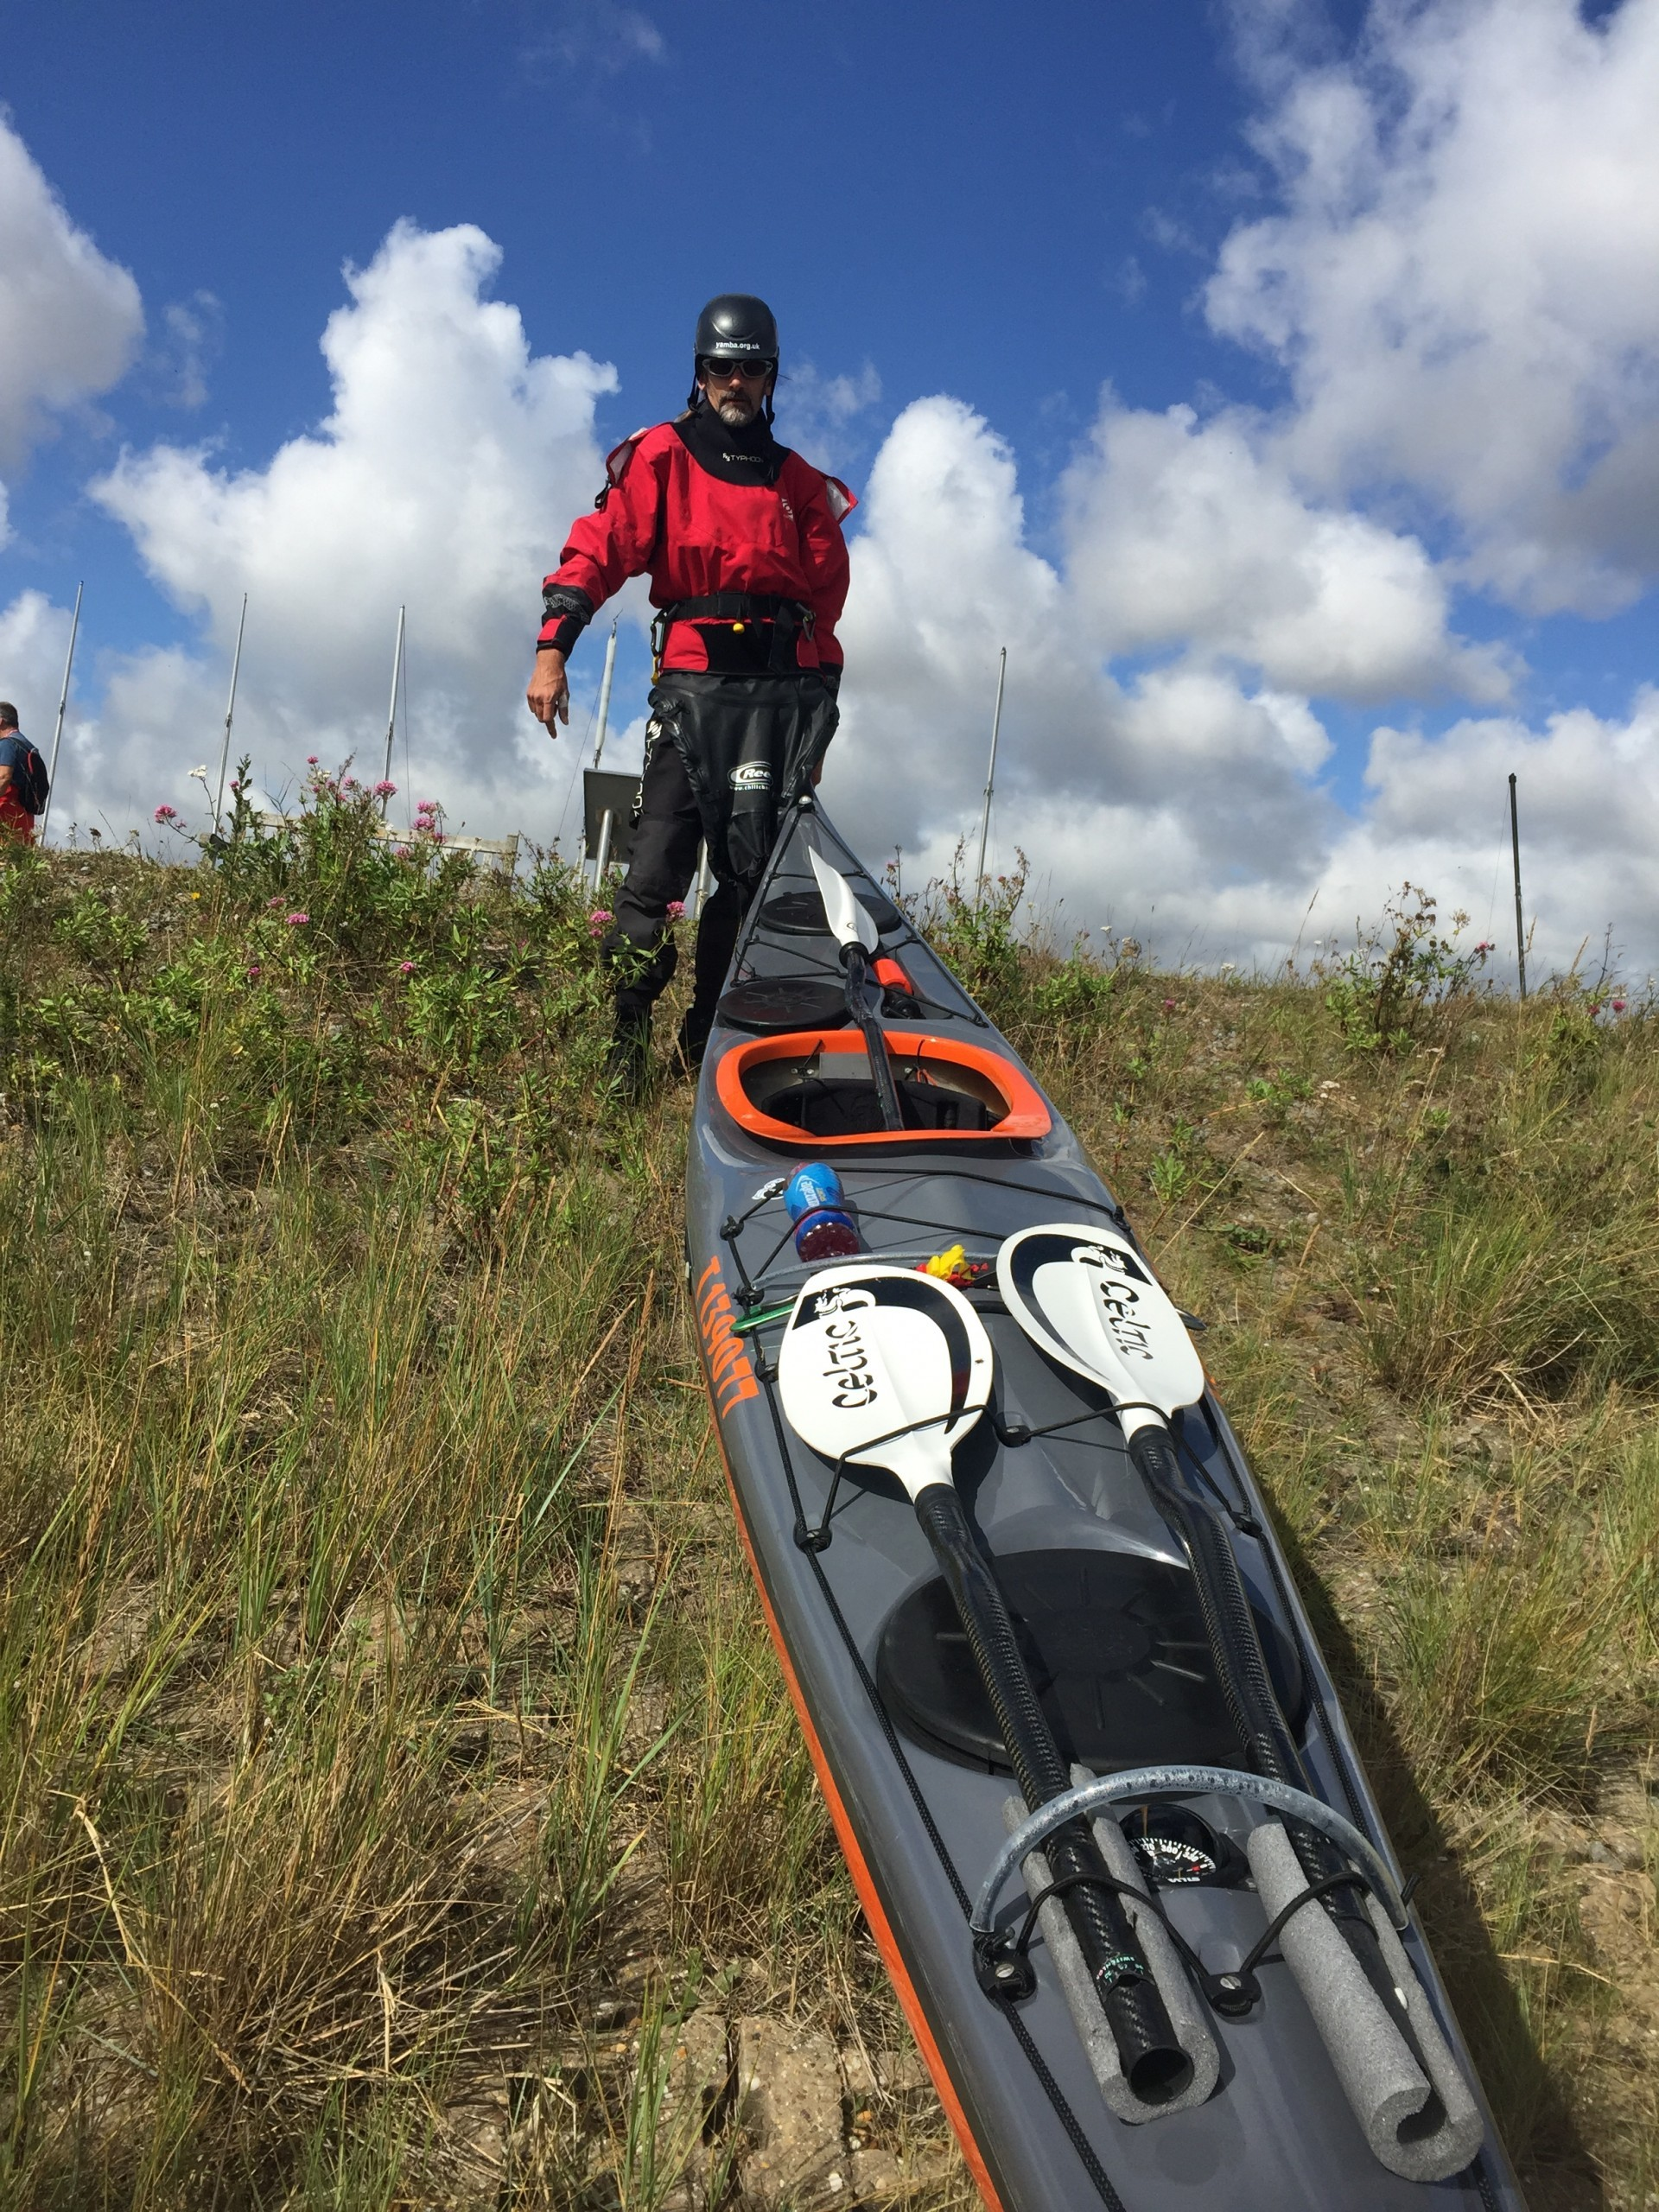 A sea kayak being carried down a grassy bank towards the ocean